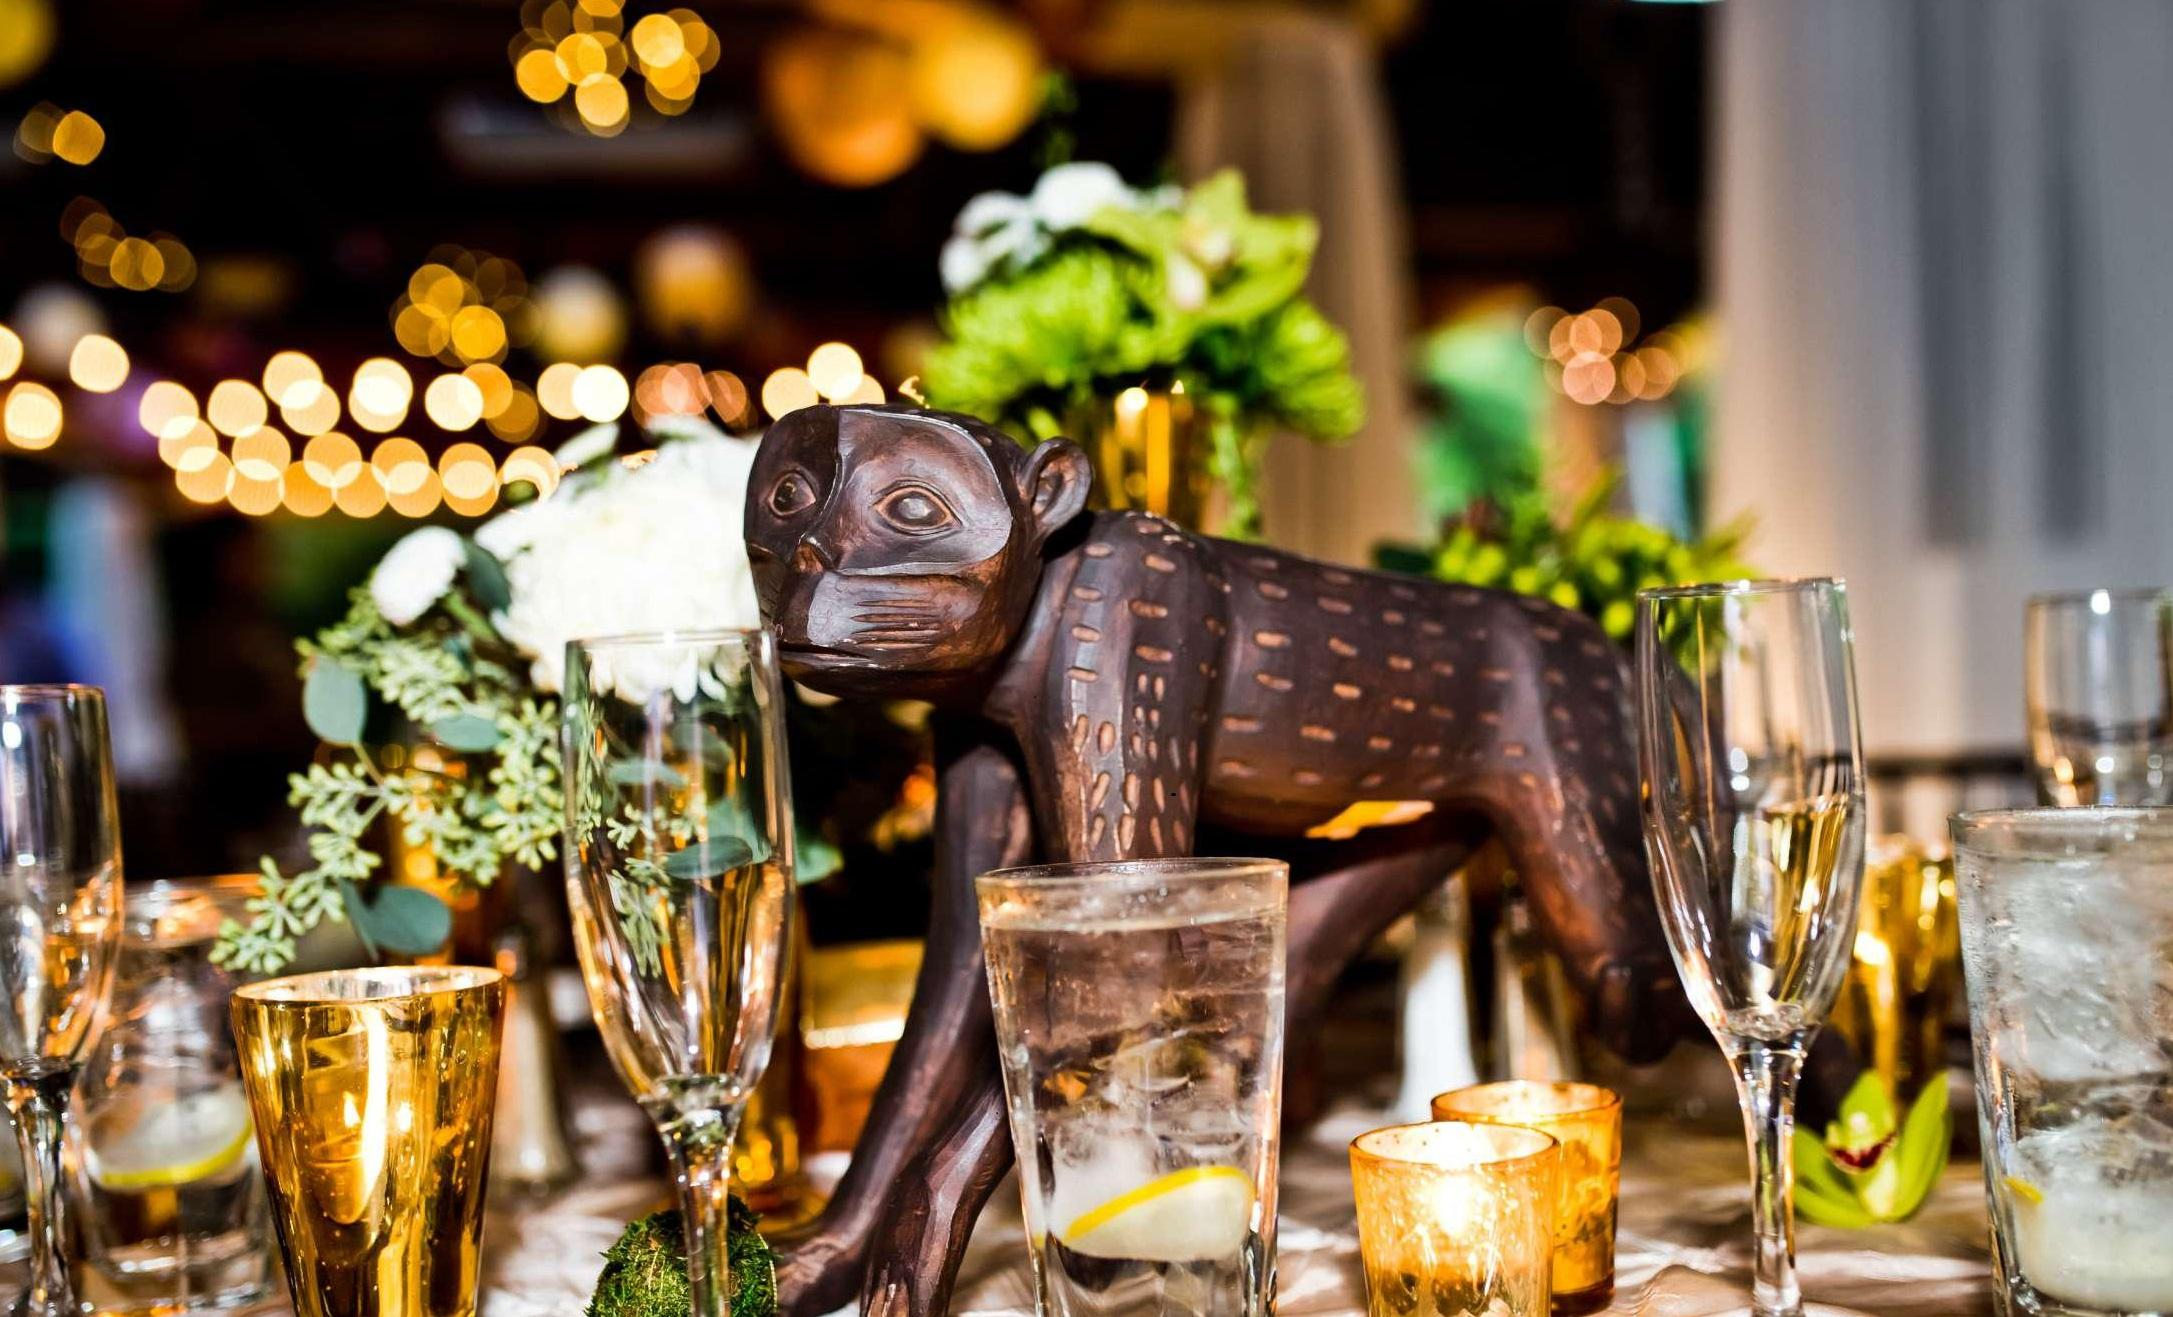 Monkey centerpiece